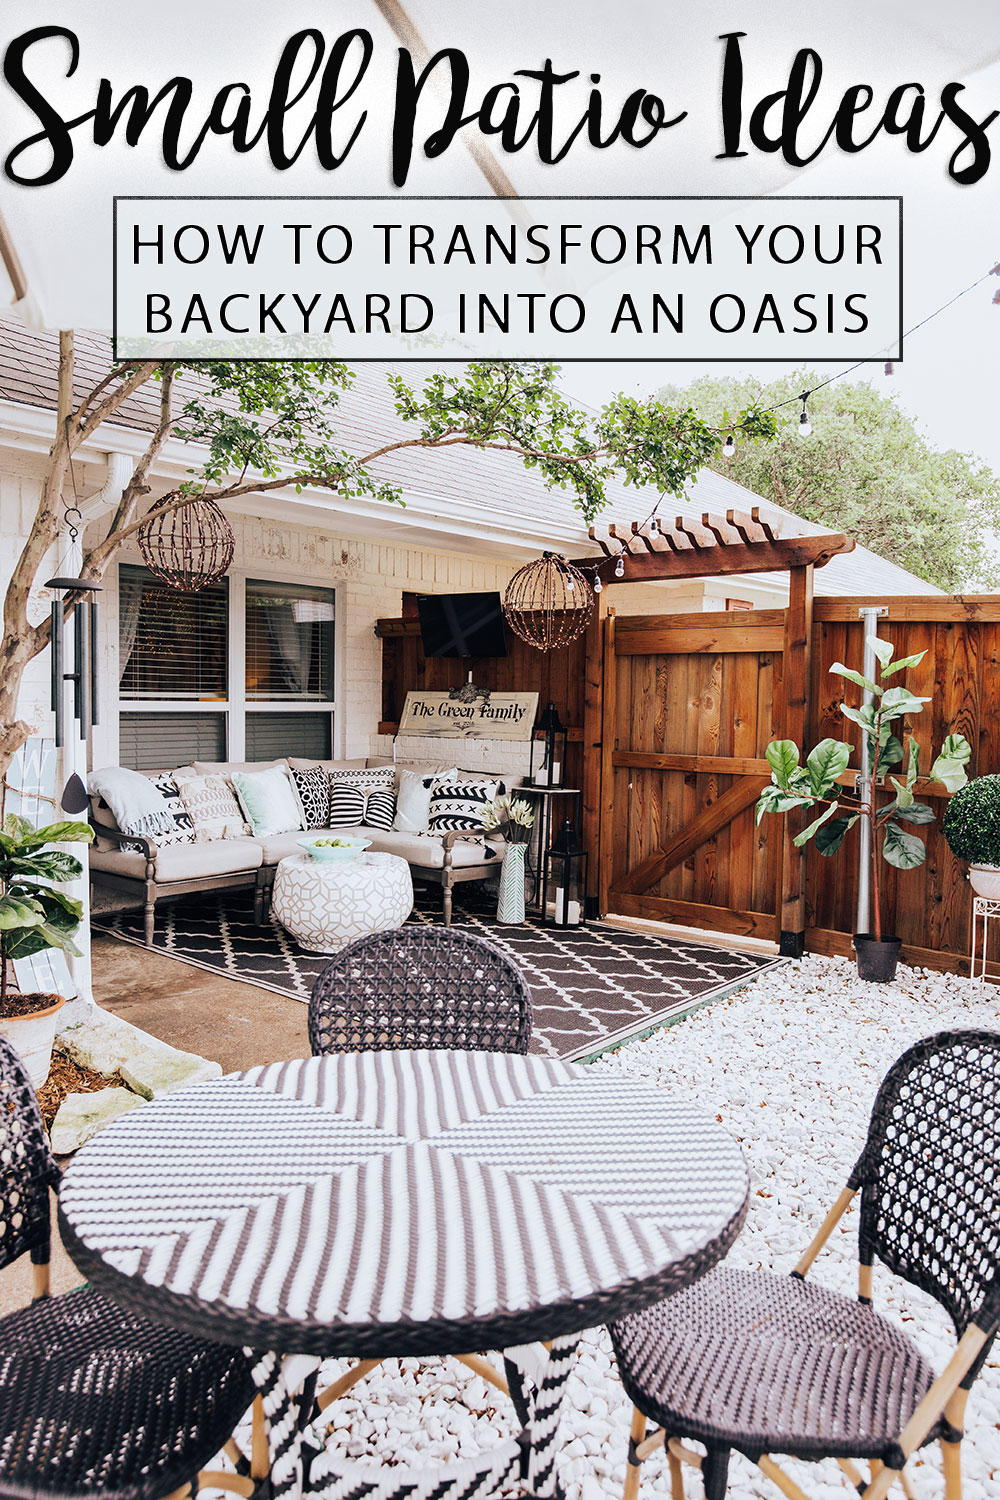 Our Back Porch Oasis + 10 Small Backyard Patio Ideas